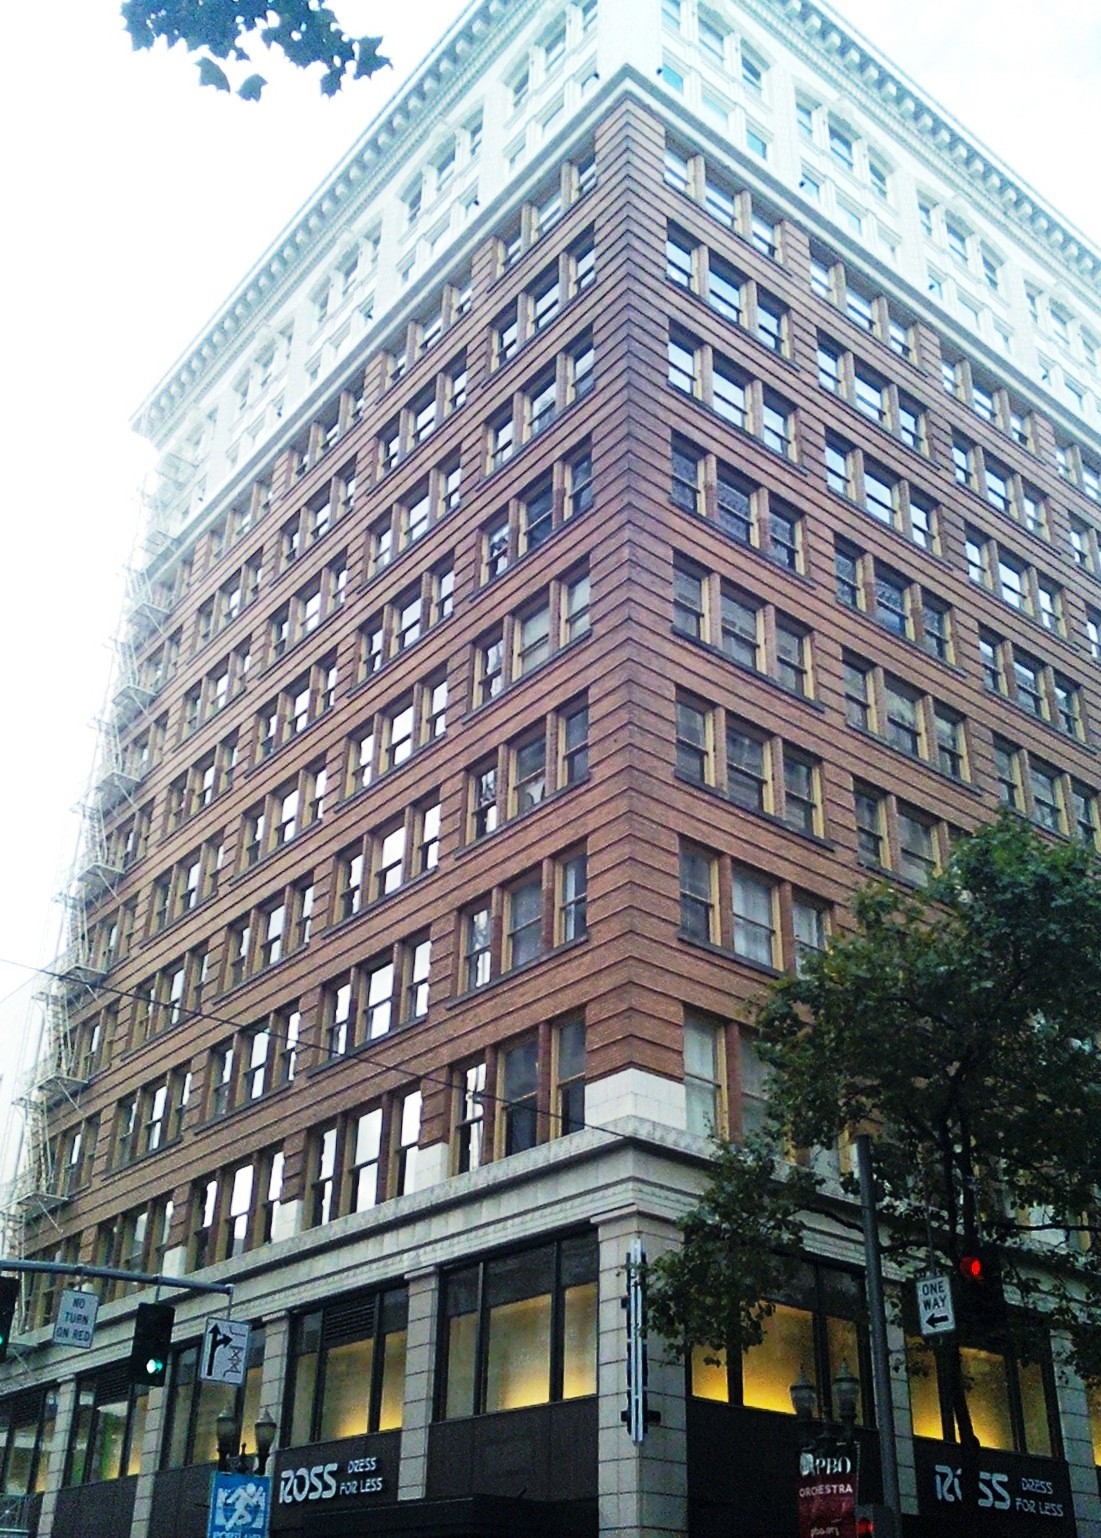 The building is named after its owner, Henry Failing, who followed his father's footsteps as a leading businessman and mayor of Portland.